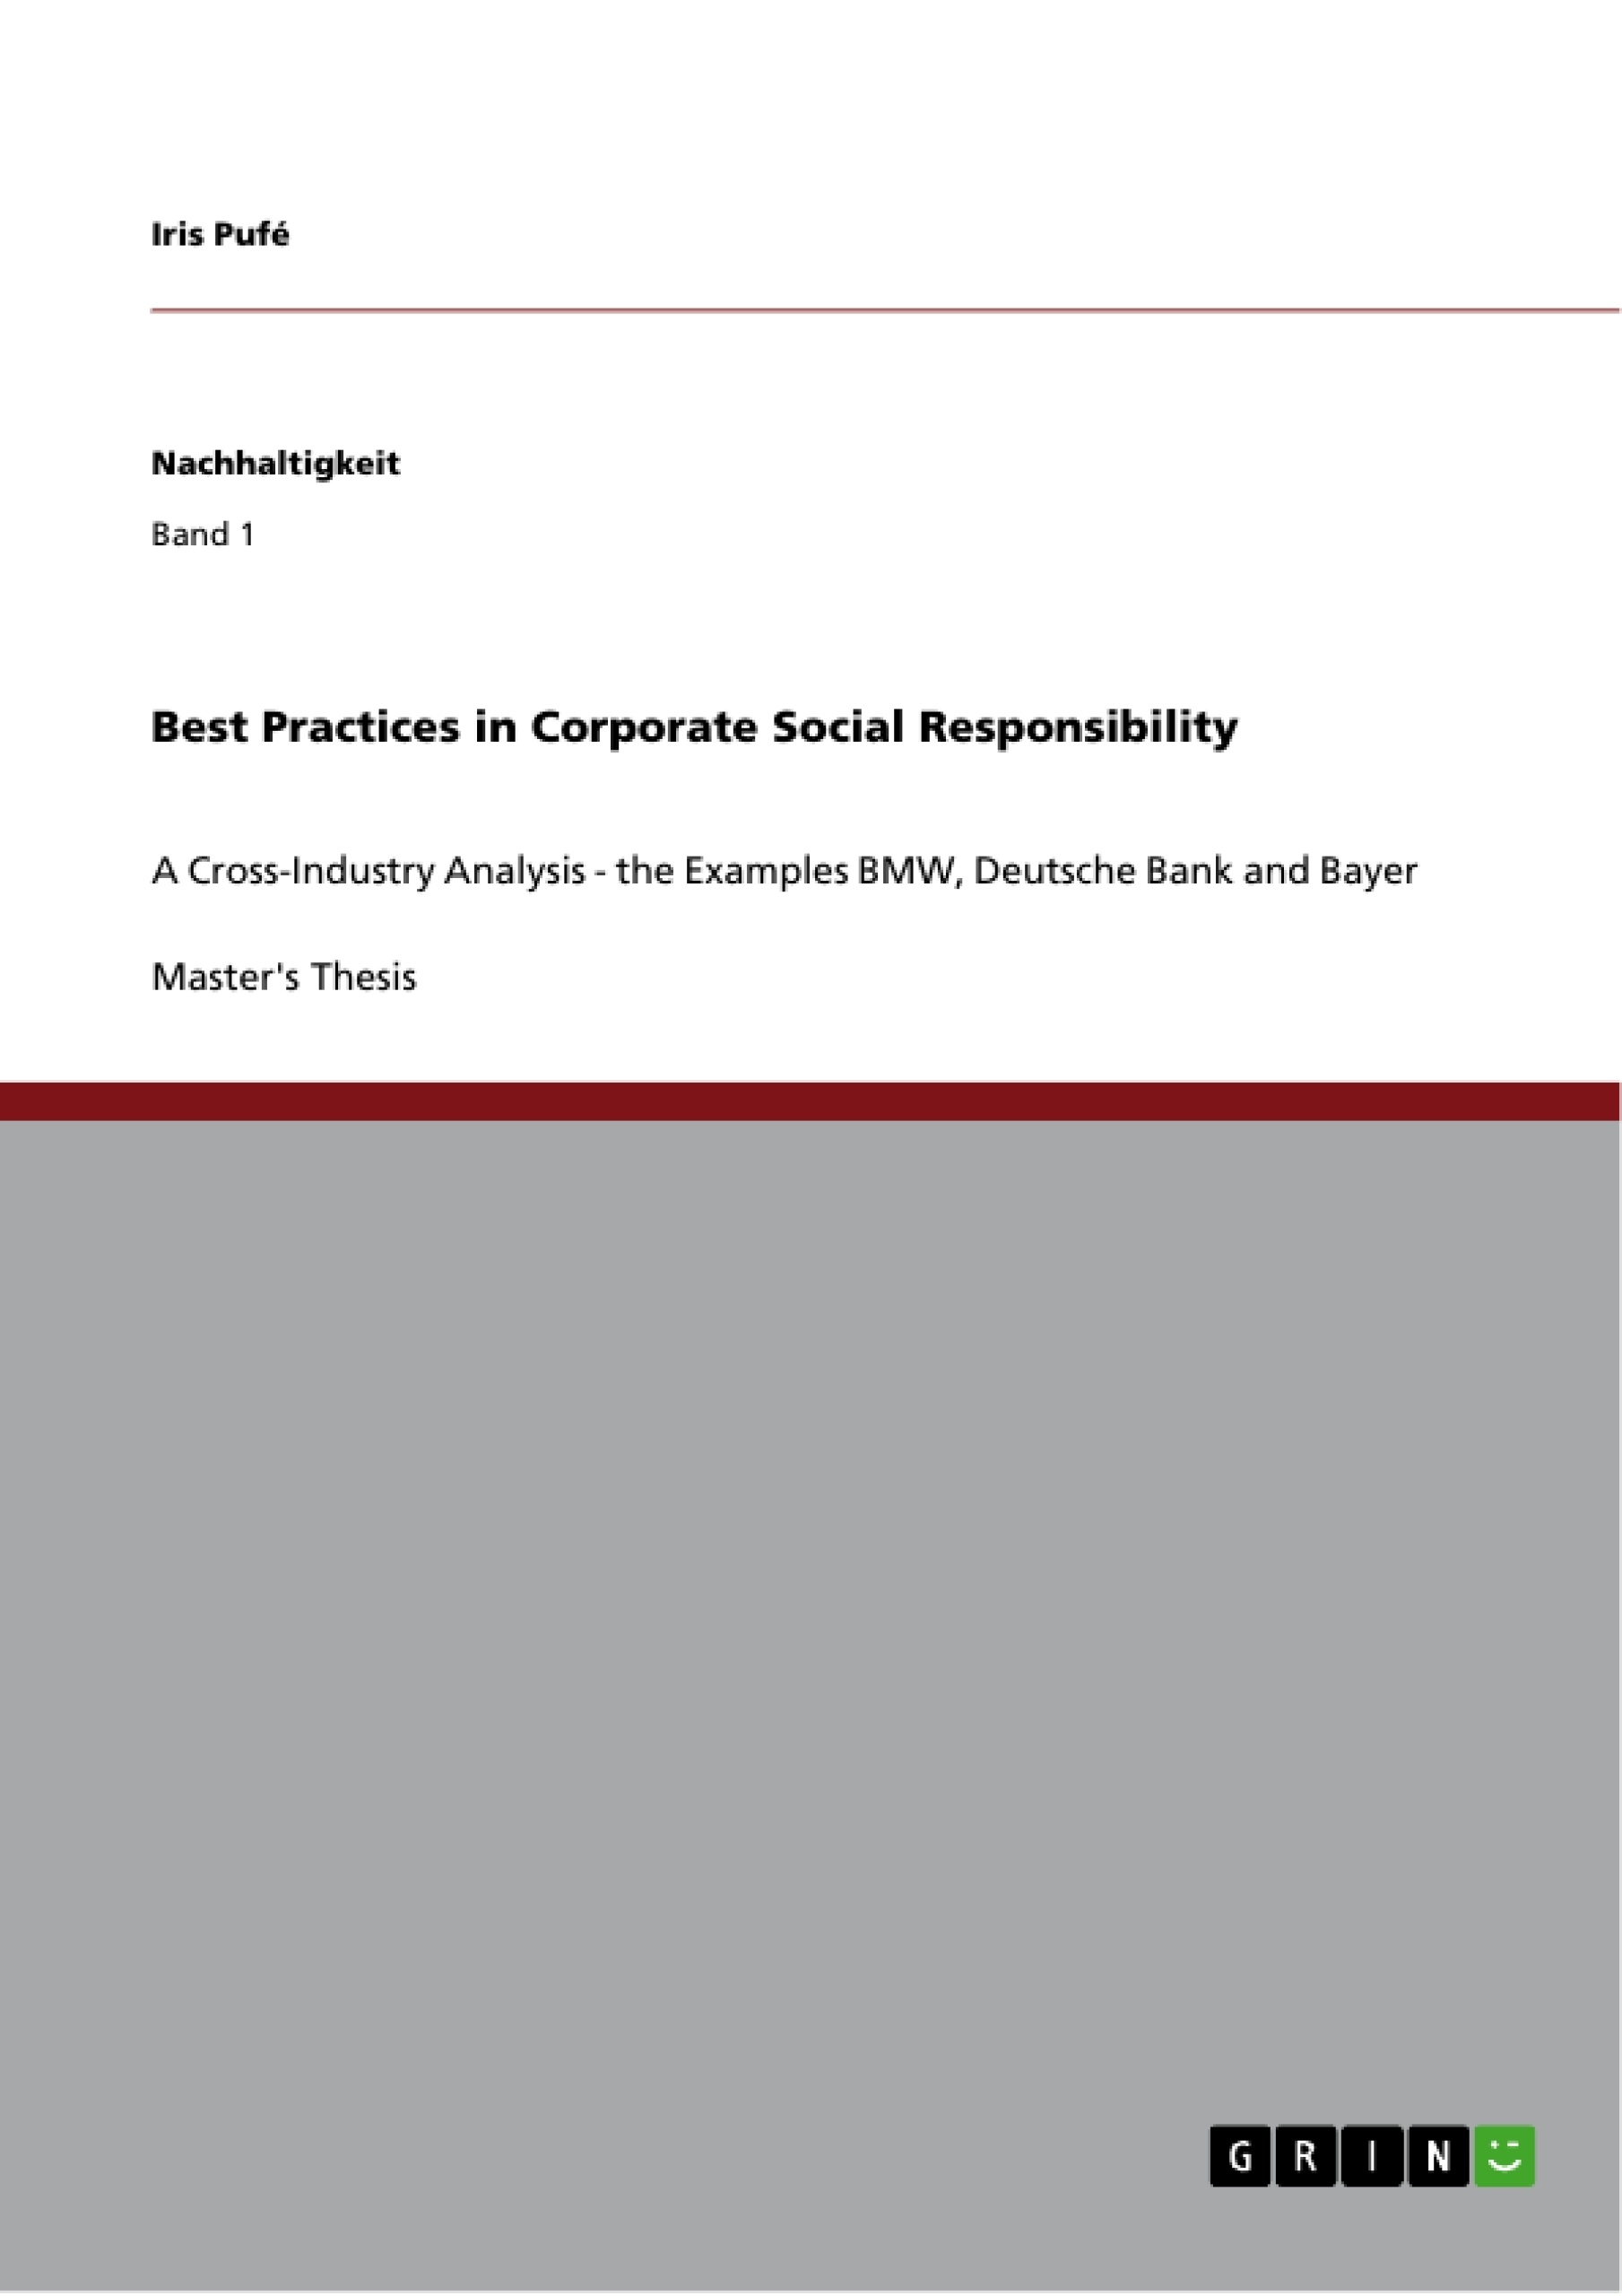 best practices in corporate social responsibility publish your  best practices in corporate social responsibility publish your master s thesis bachelor s thesis essay or term paper